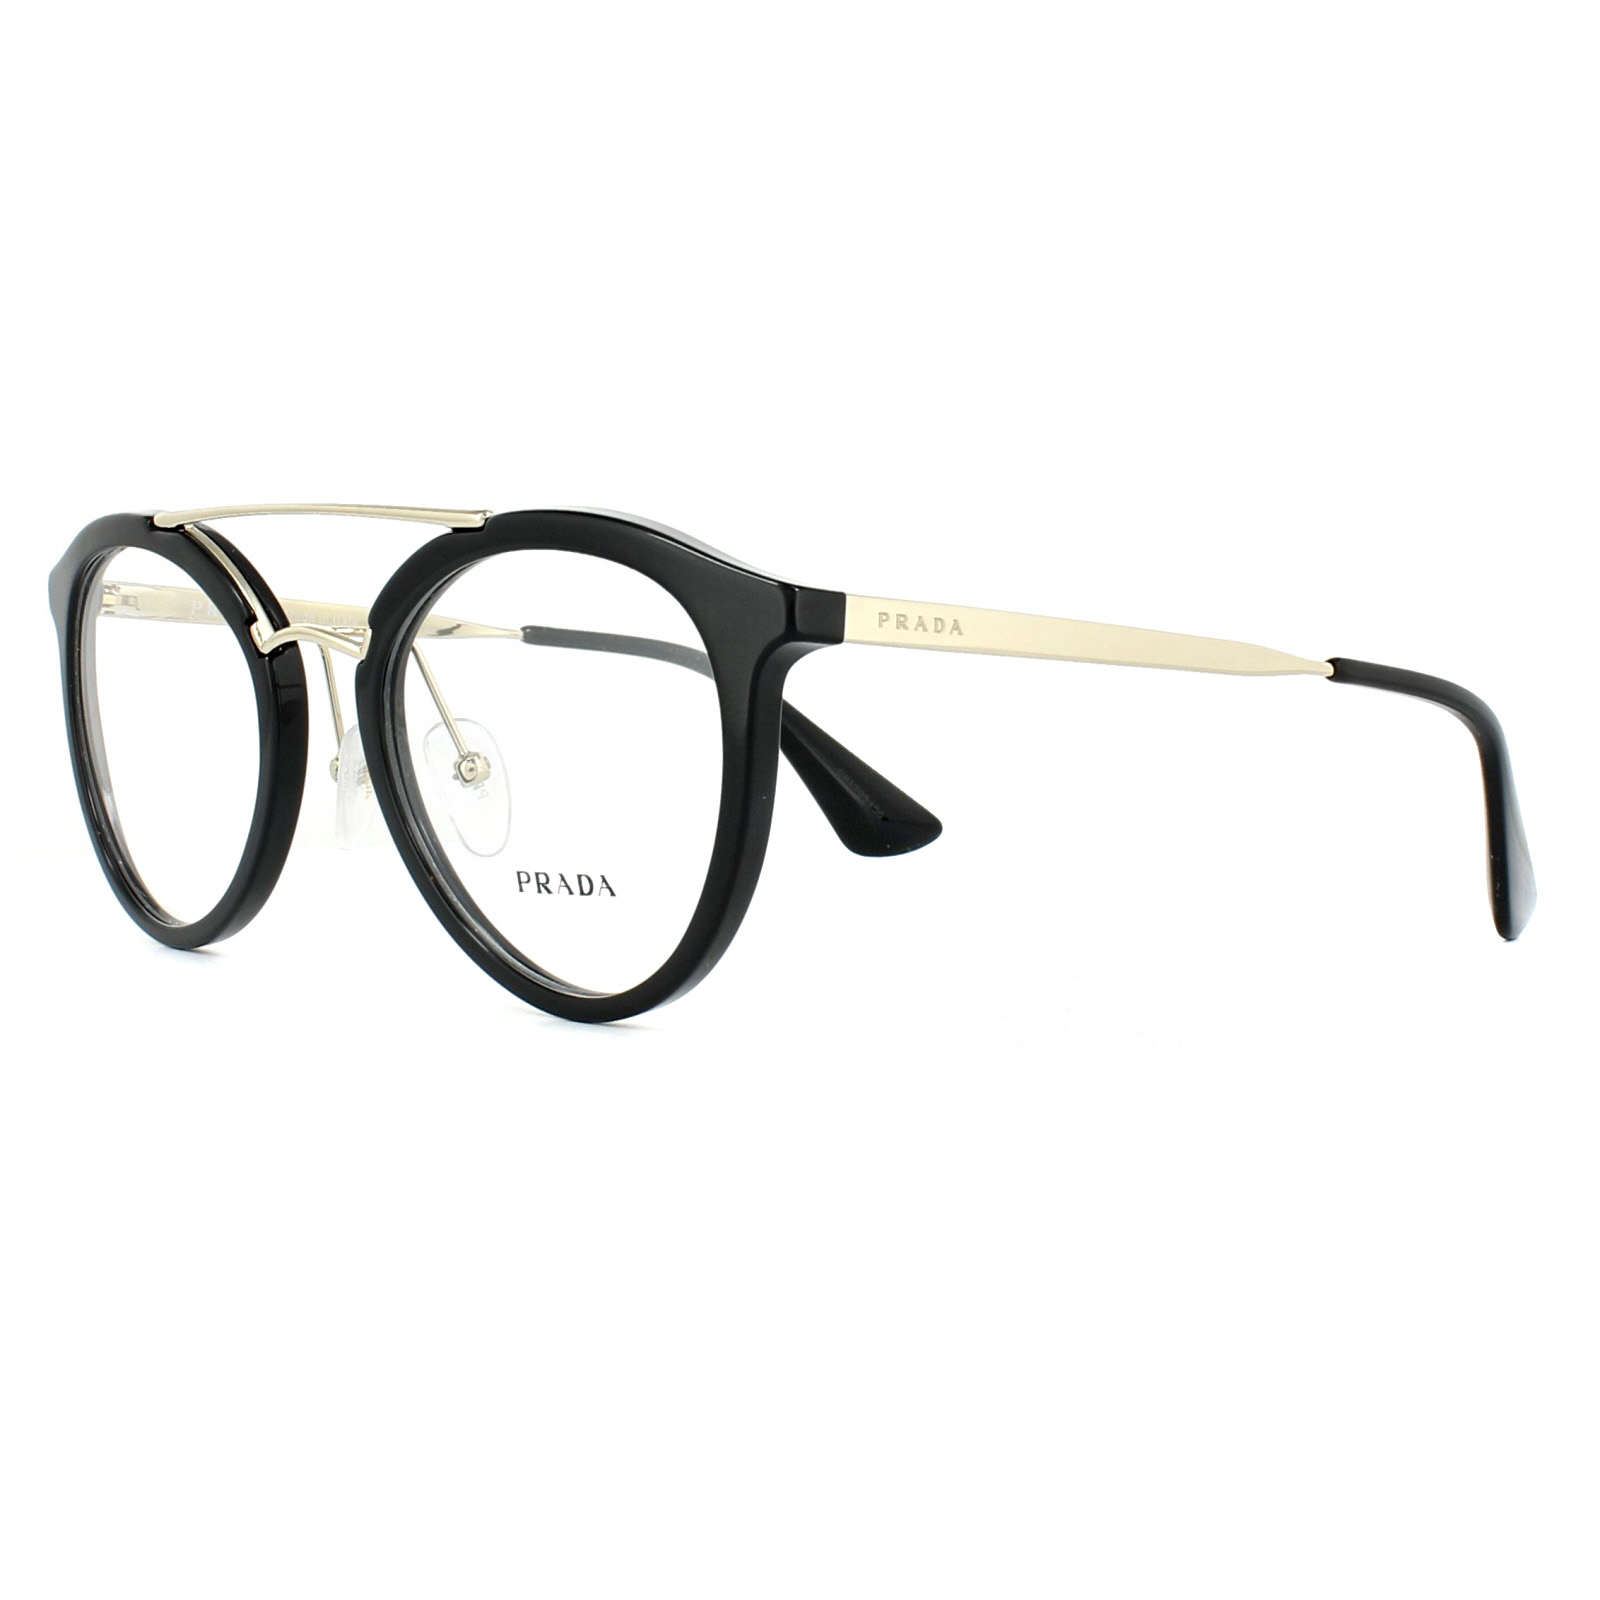 69c83d8fc3 Prada Glasses Frames PR15TV 1AB1O1 Black 50mm Womens 8053672674170 ...